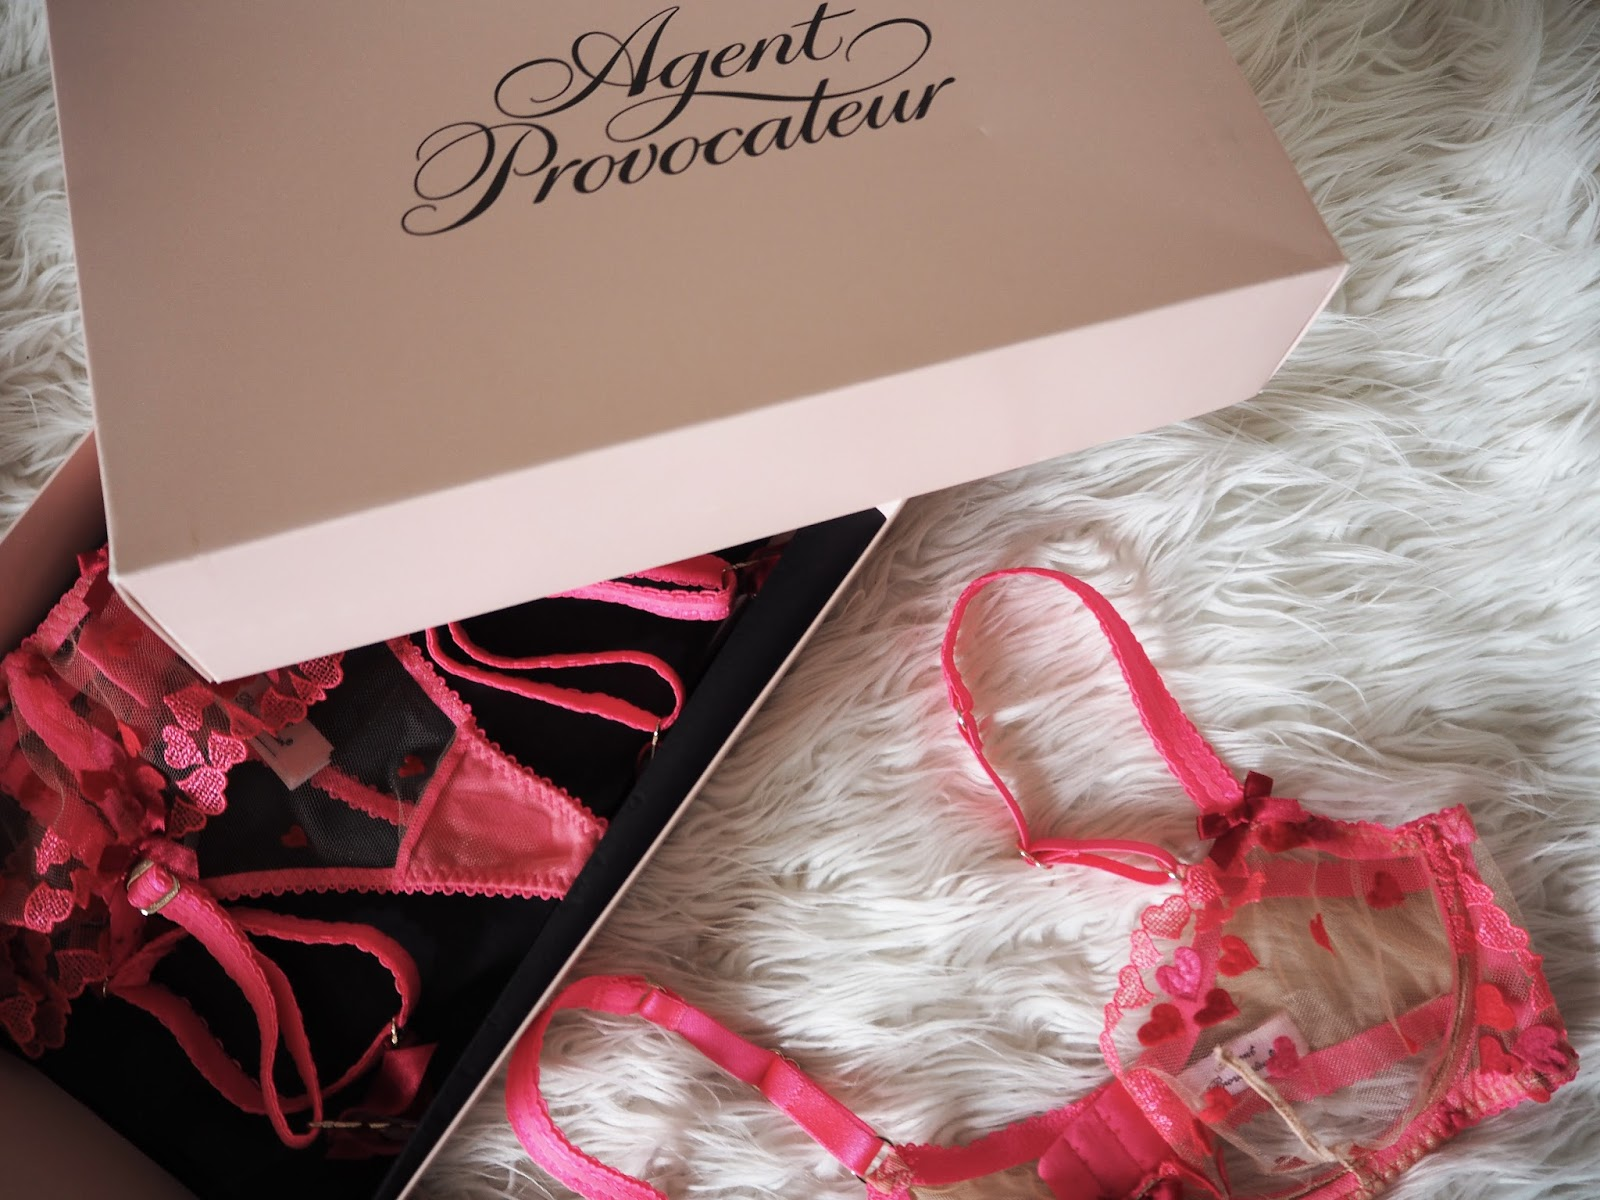 Lingerie: Agent Provocateur / Bra: Here / Thong: Here / Brief: Here / Suspender: Here